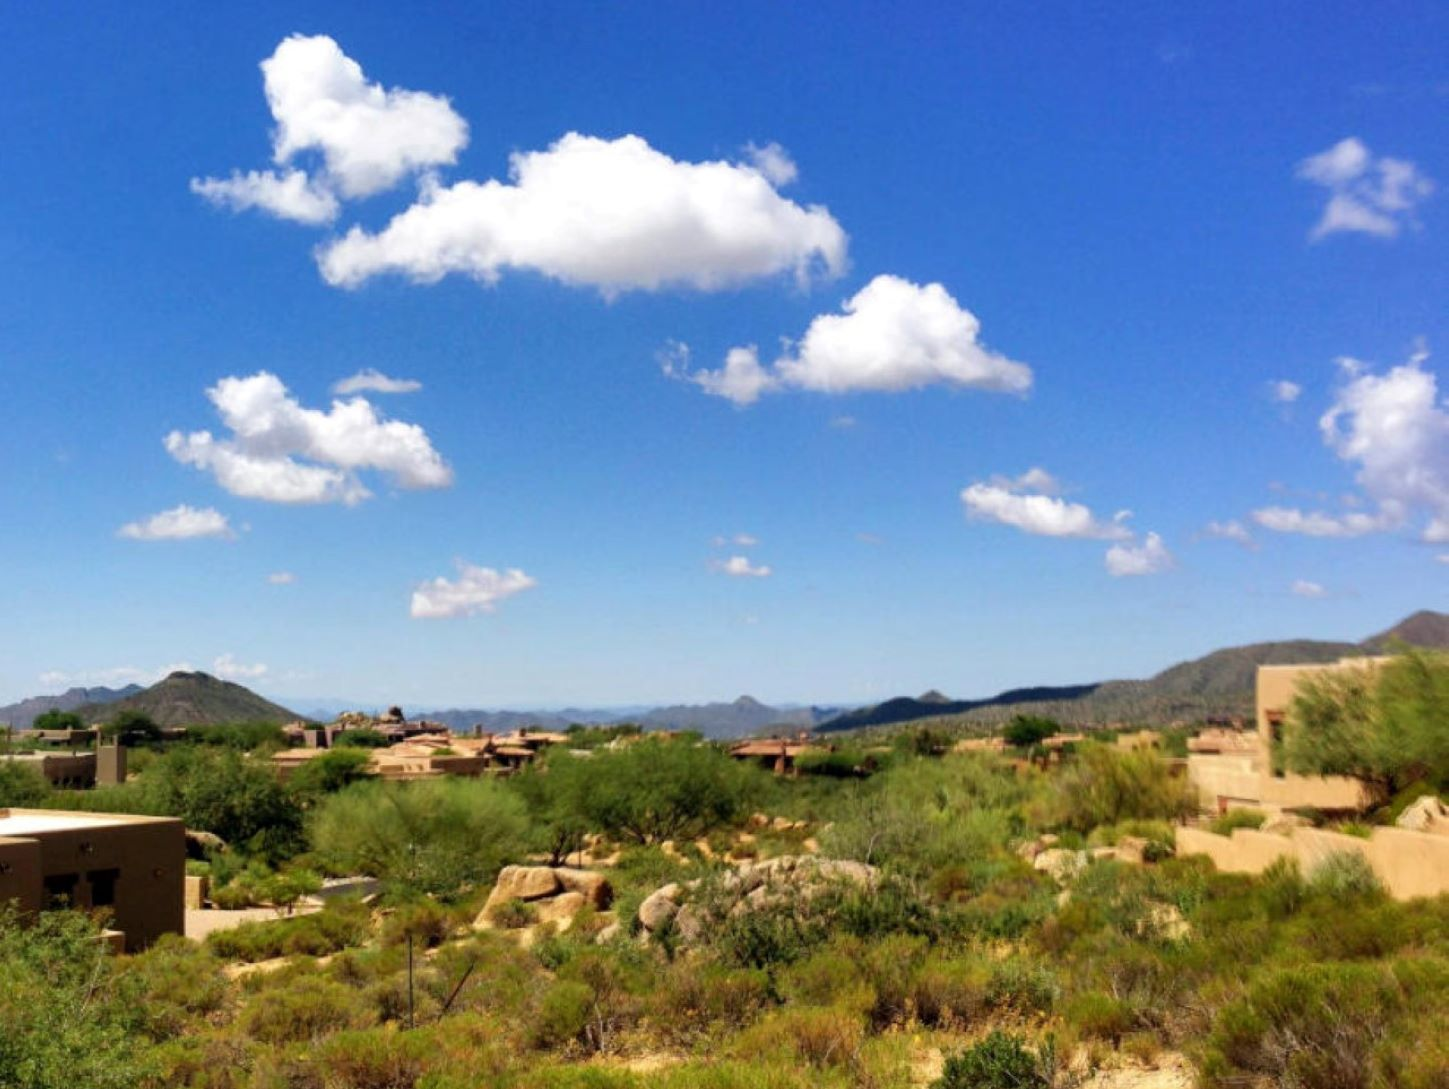 Terreno por un Venta en Elevated Homesite In Desert Mountain's Village Of Arrowhead 41047 N 109th Place #3 Scottsdale, Arizona, 85262 Estados Unidos